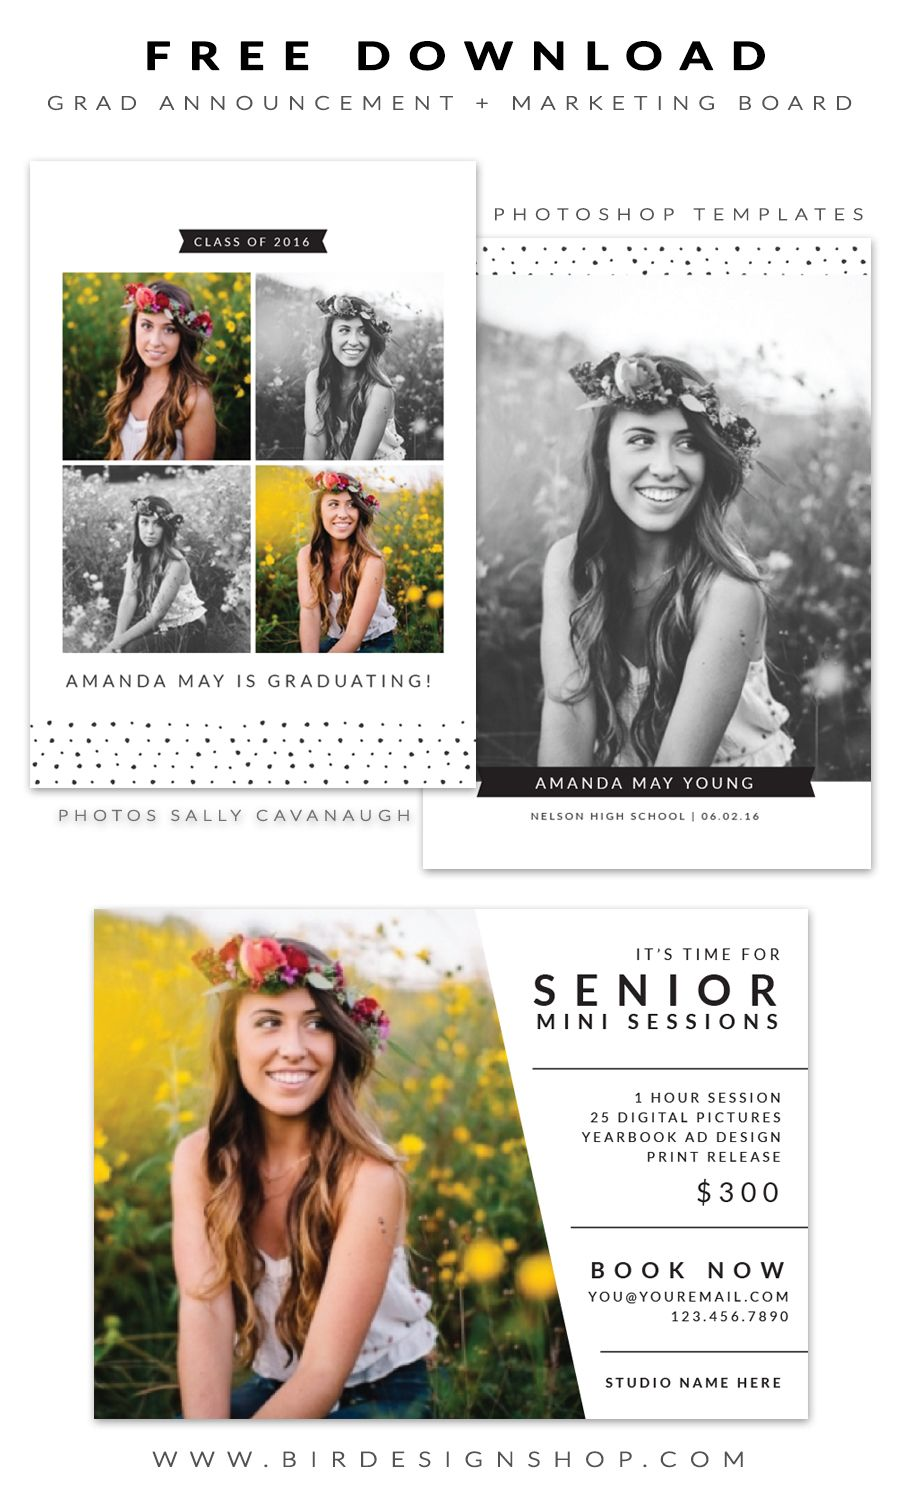 free grad announcement and marketing board photoshop templates for photographers by birdesign